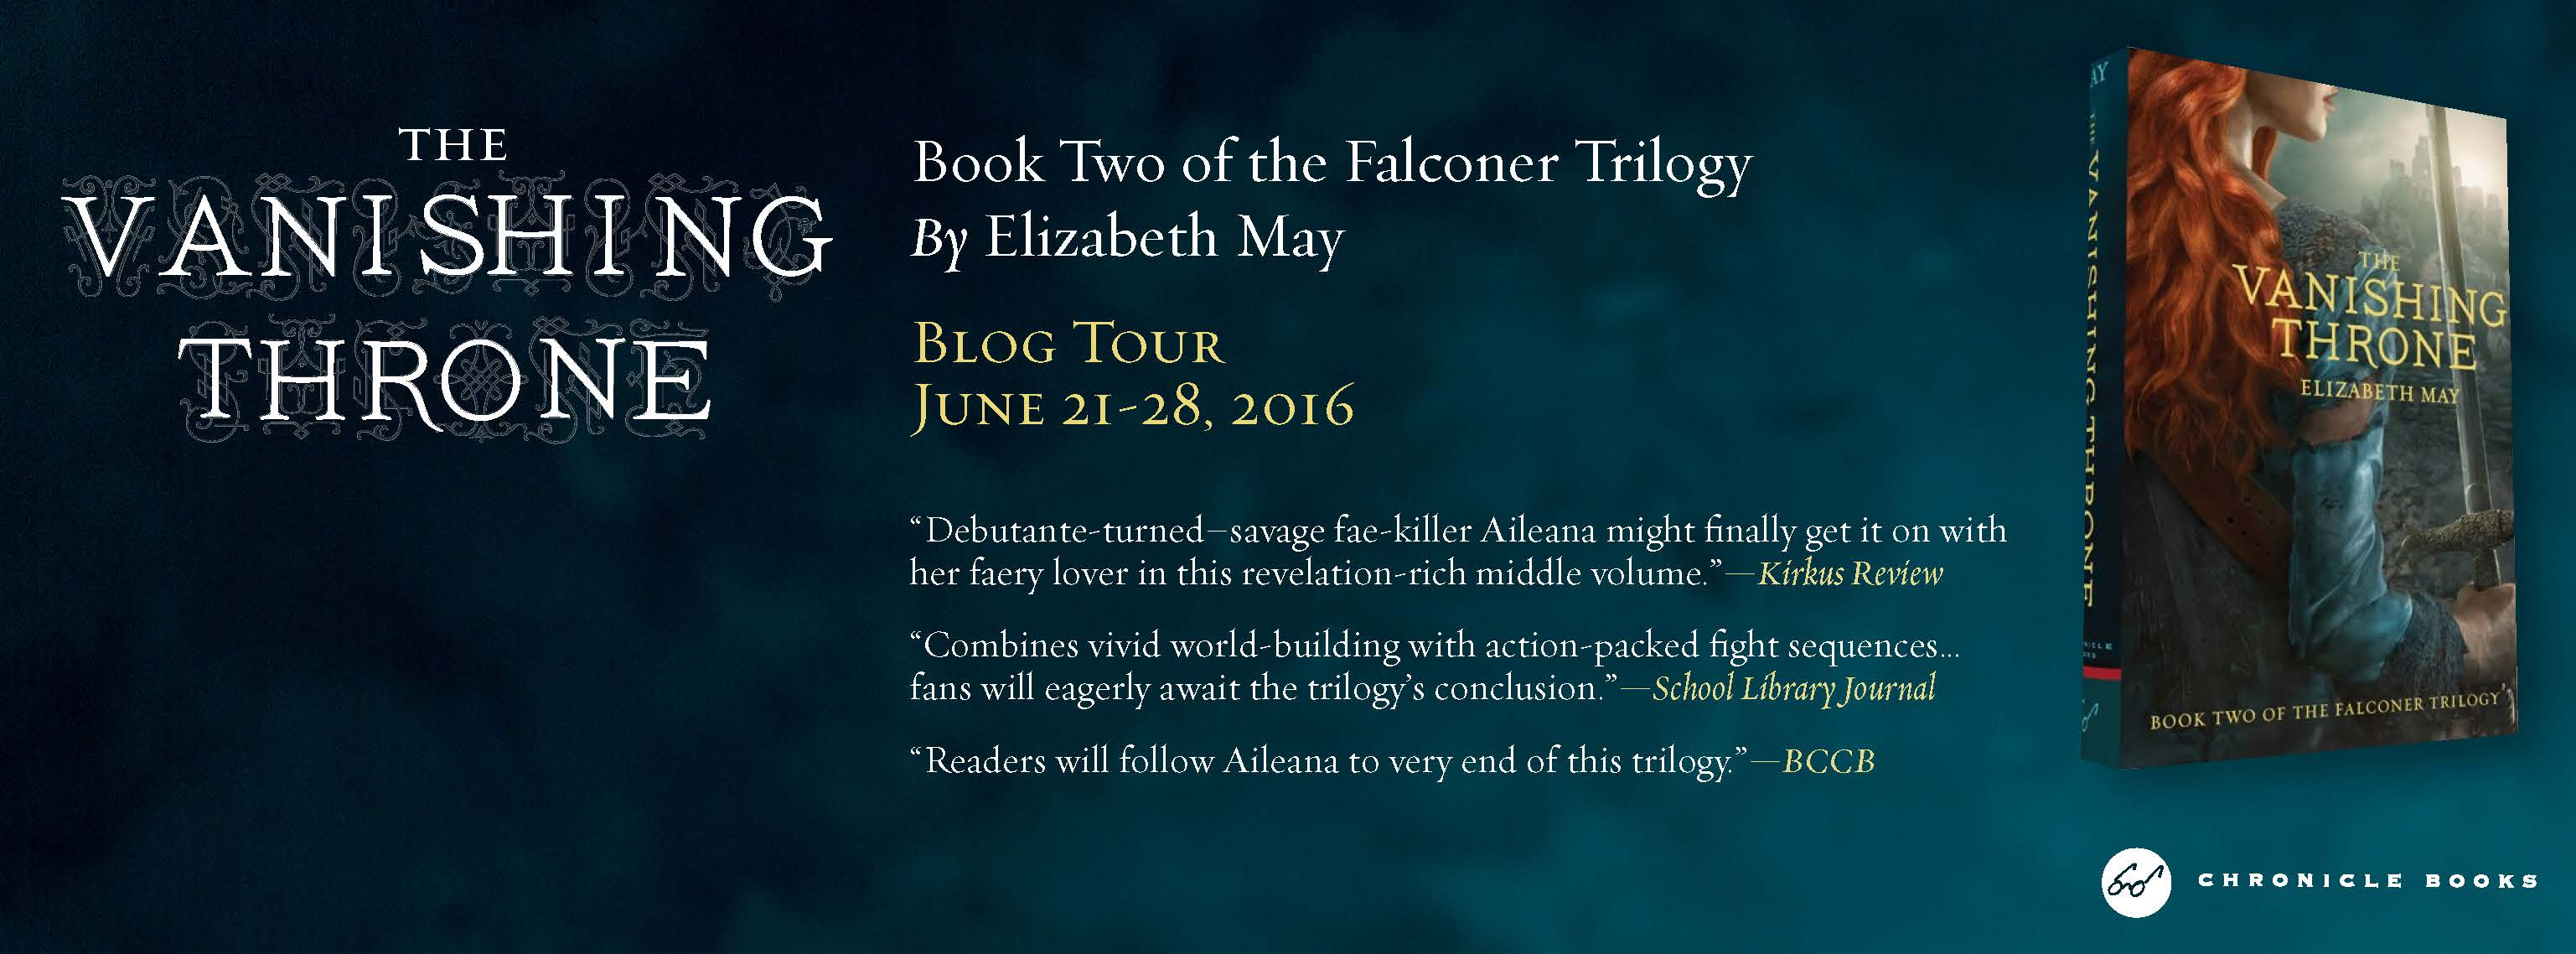 Vanishing Throne Blog Tour Banner